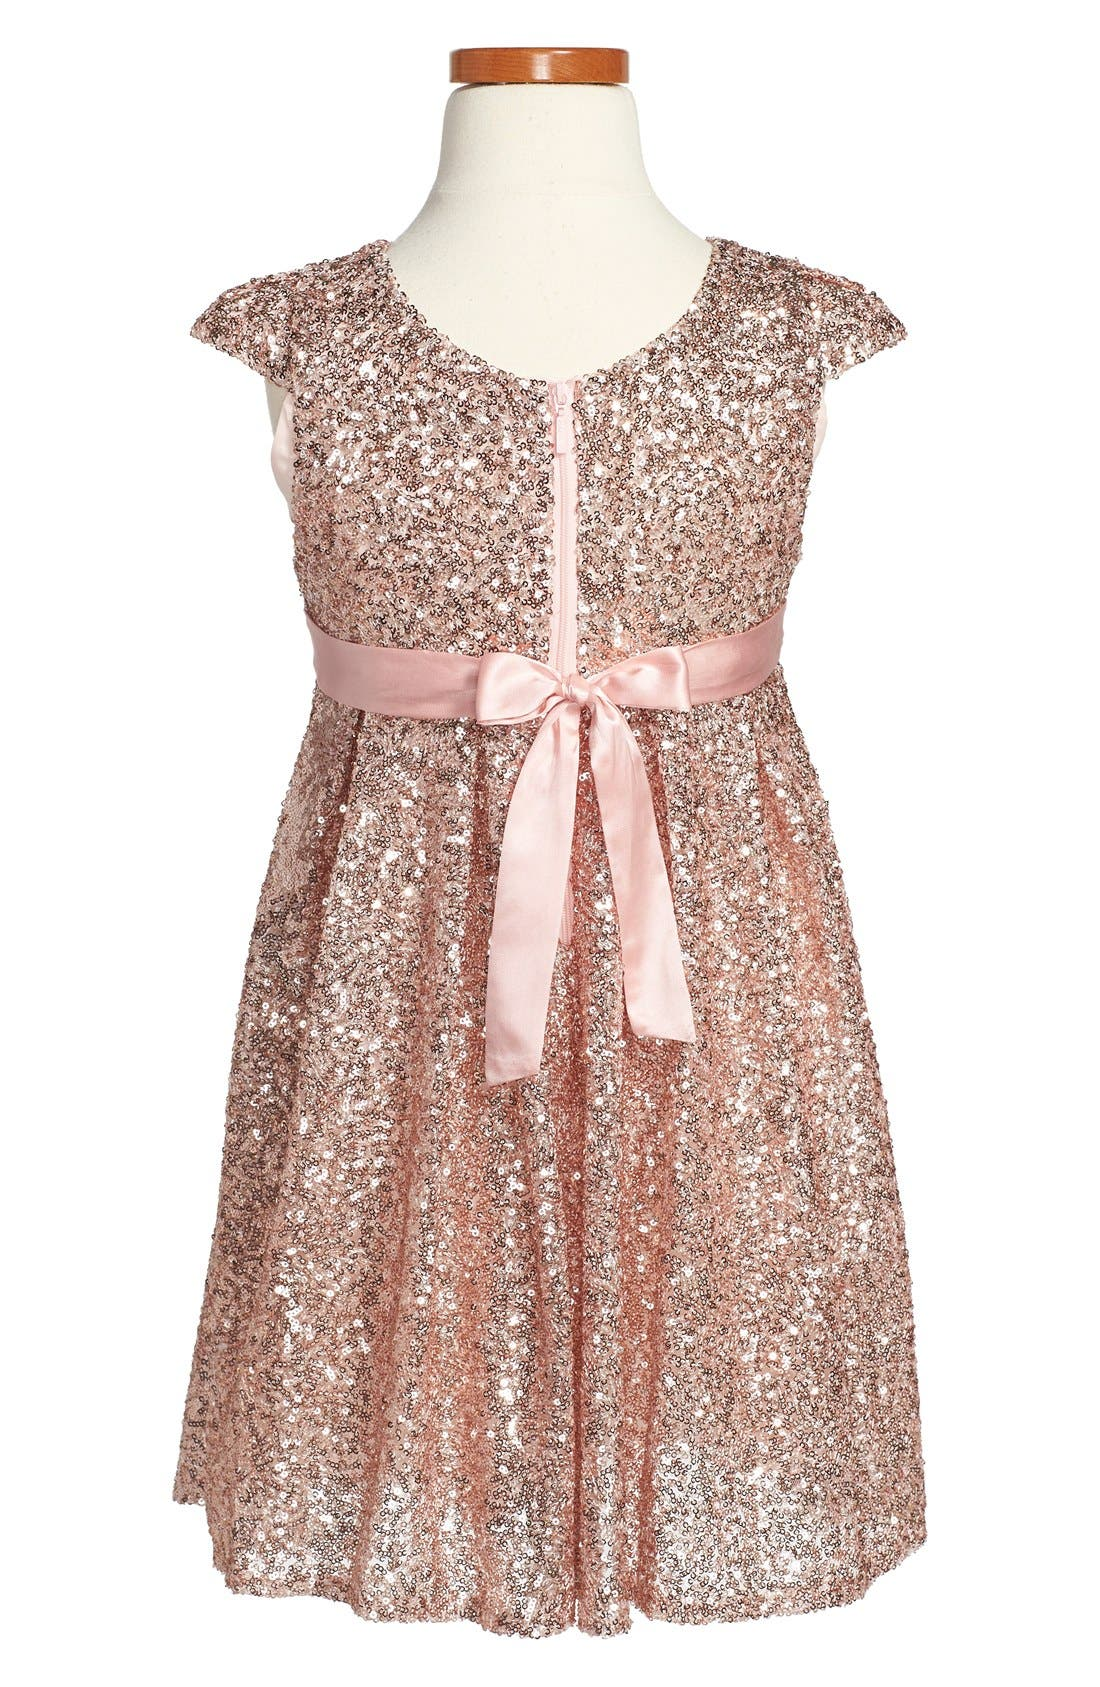 Alternate Image 2  - ilovegorgeous 'Moon Festival' Sequin Dress (Toddler Girls & Little Girls)